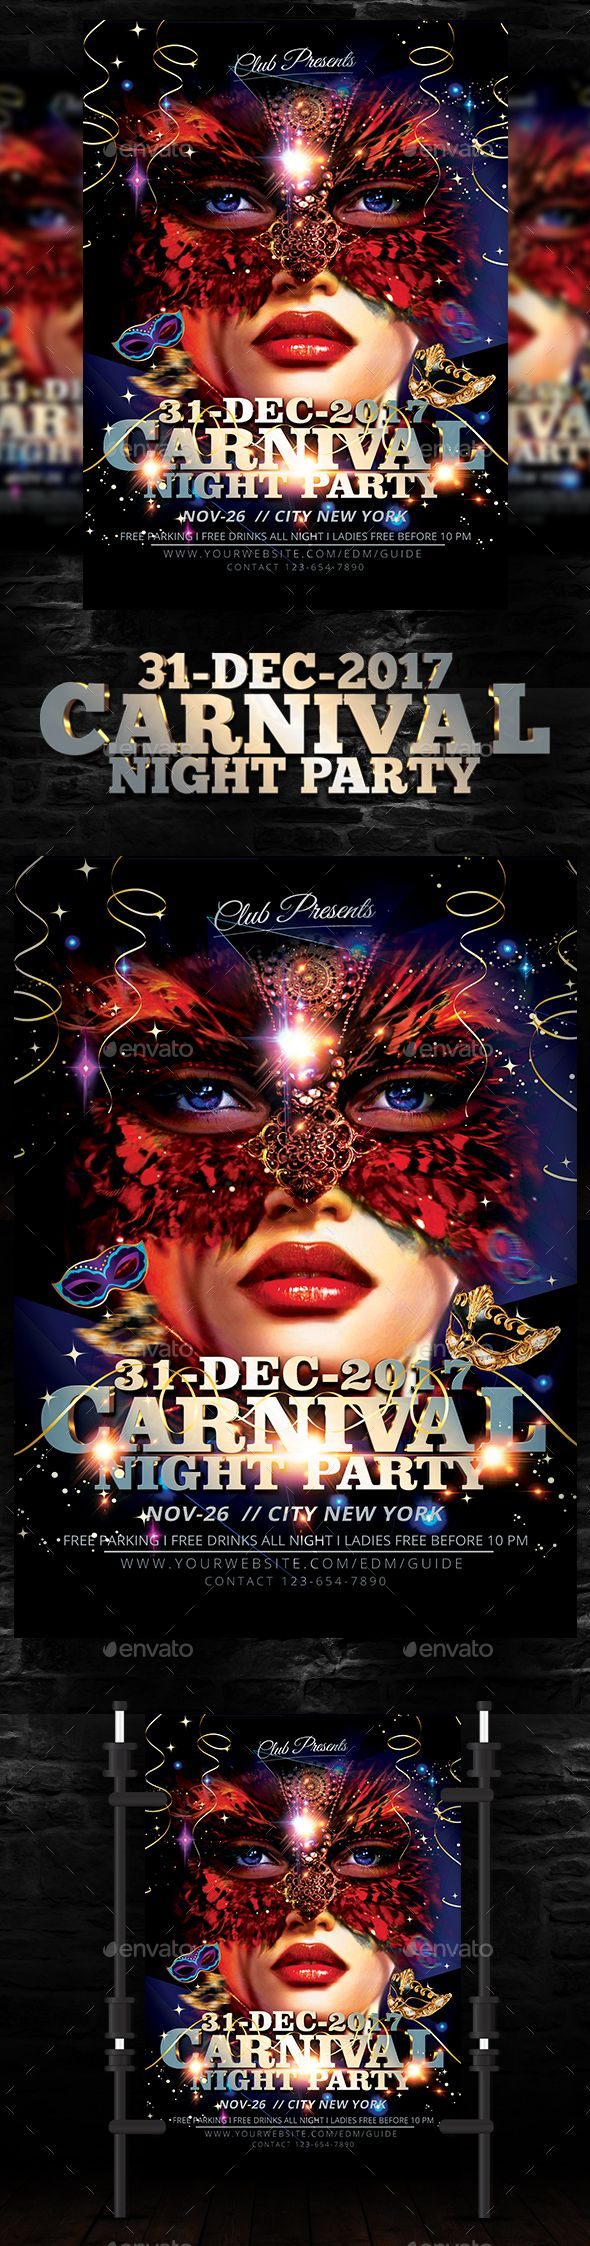 carnival flyer pinterest carnival flyer template and template